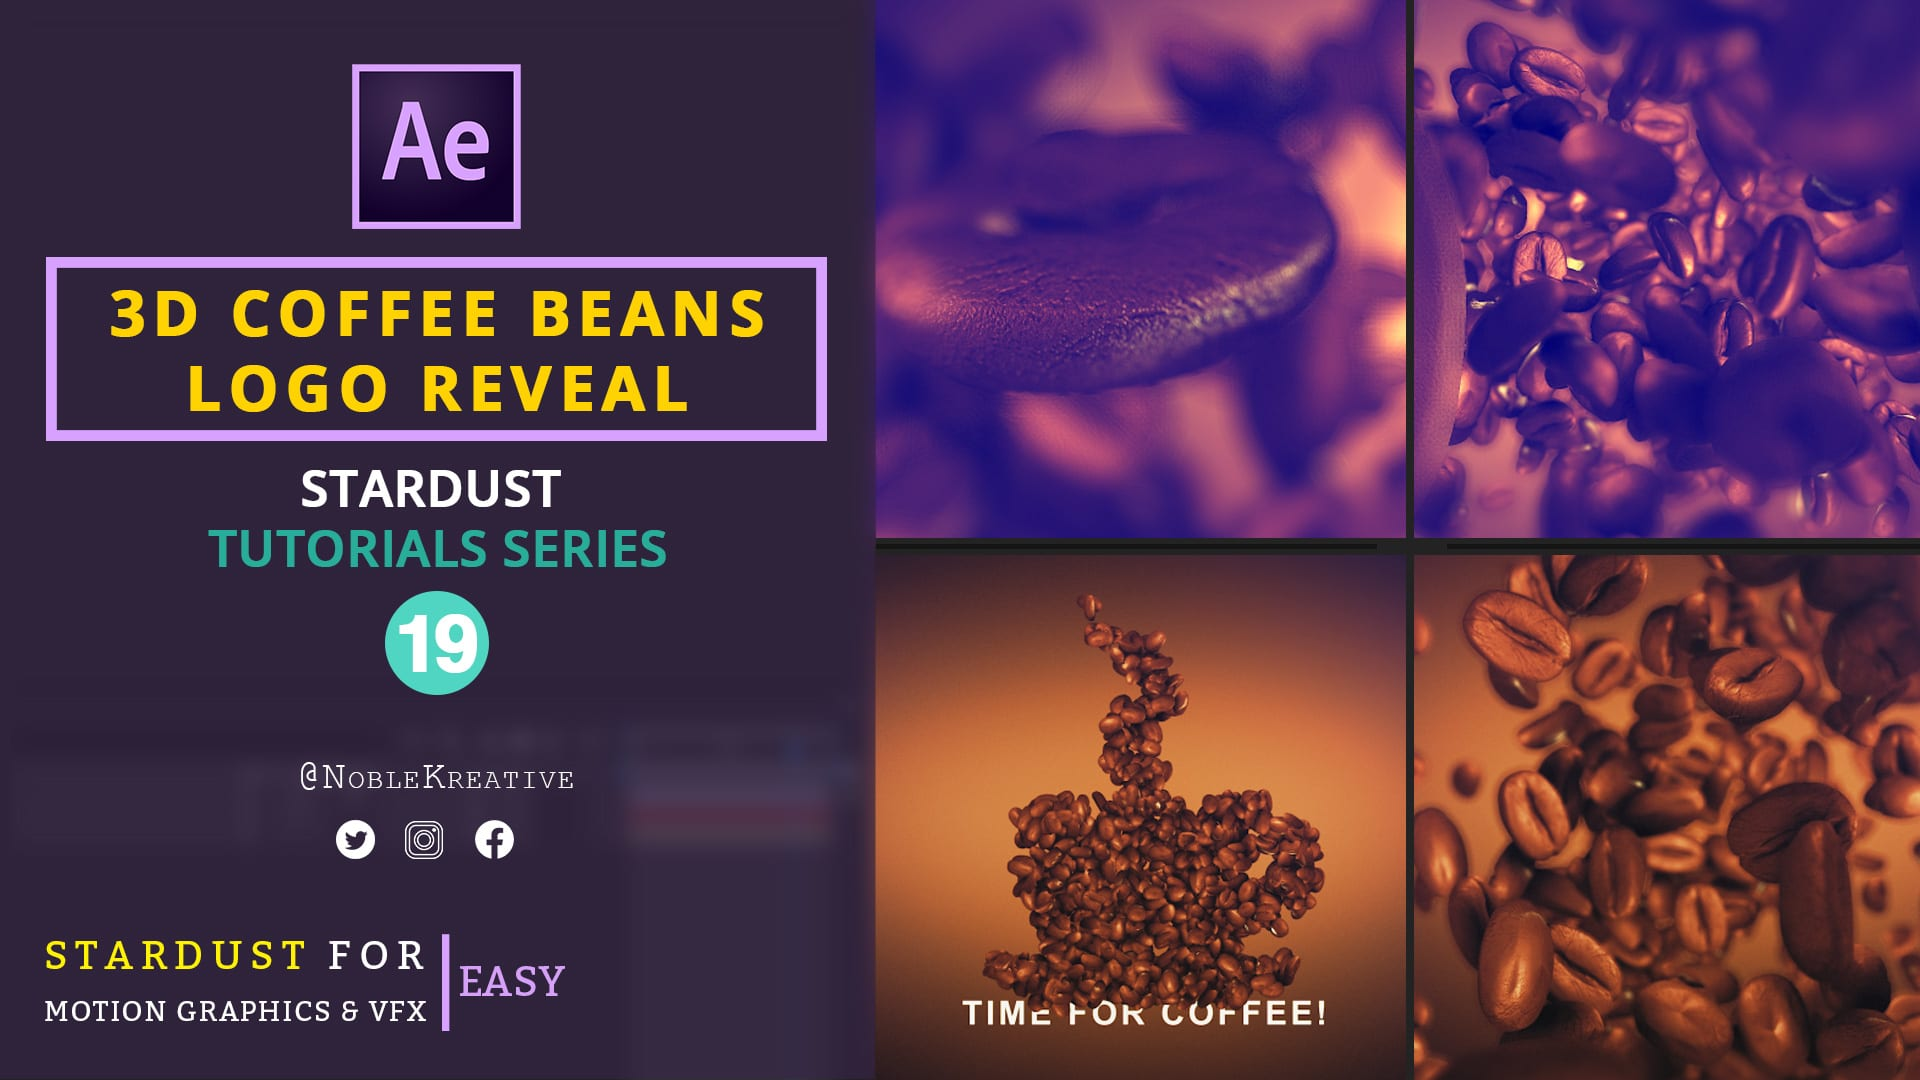 3D Coffee Beans Logo Reveal ,after effects tutorials , stardust tutorials , motion graphics